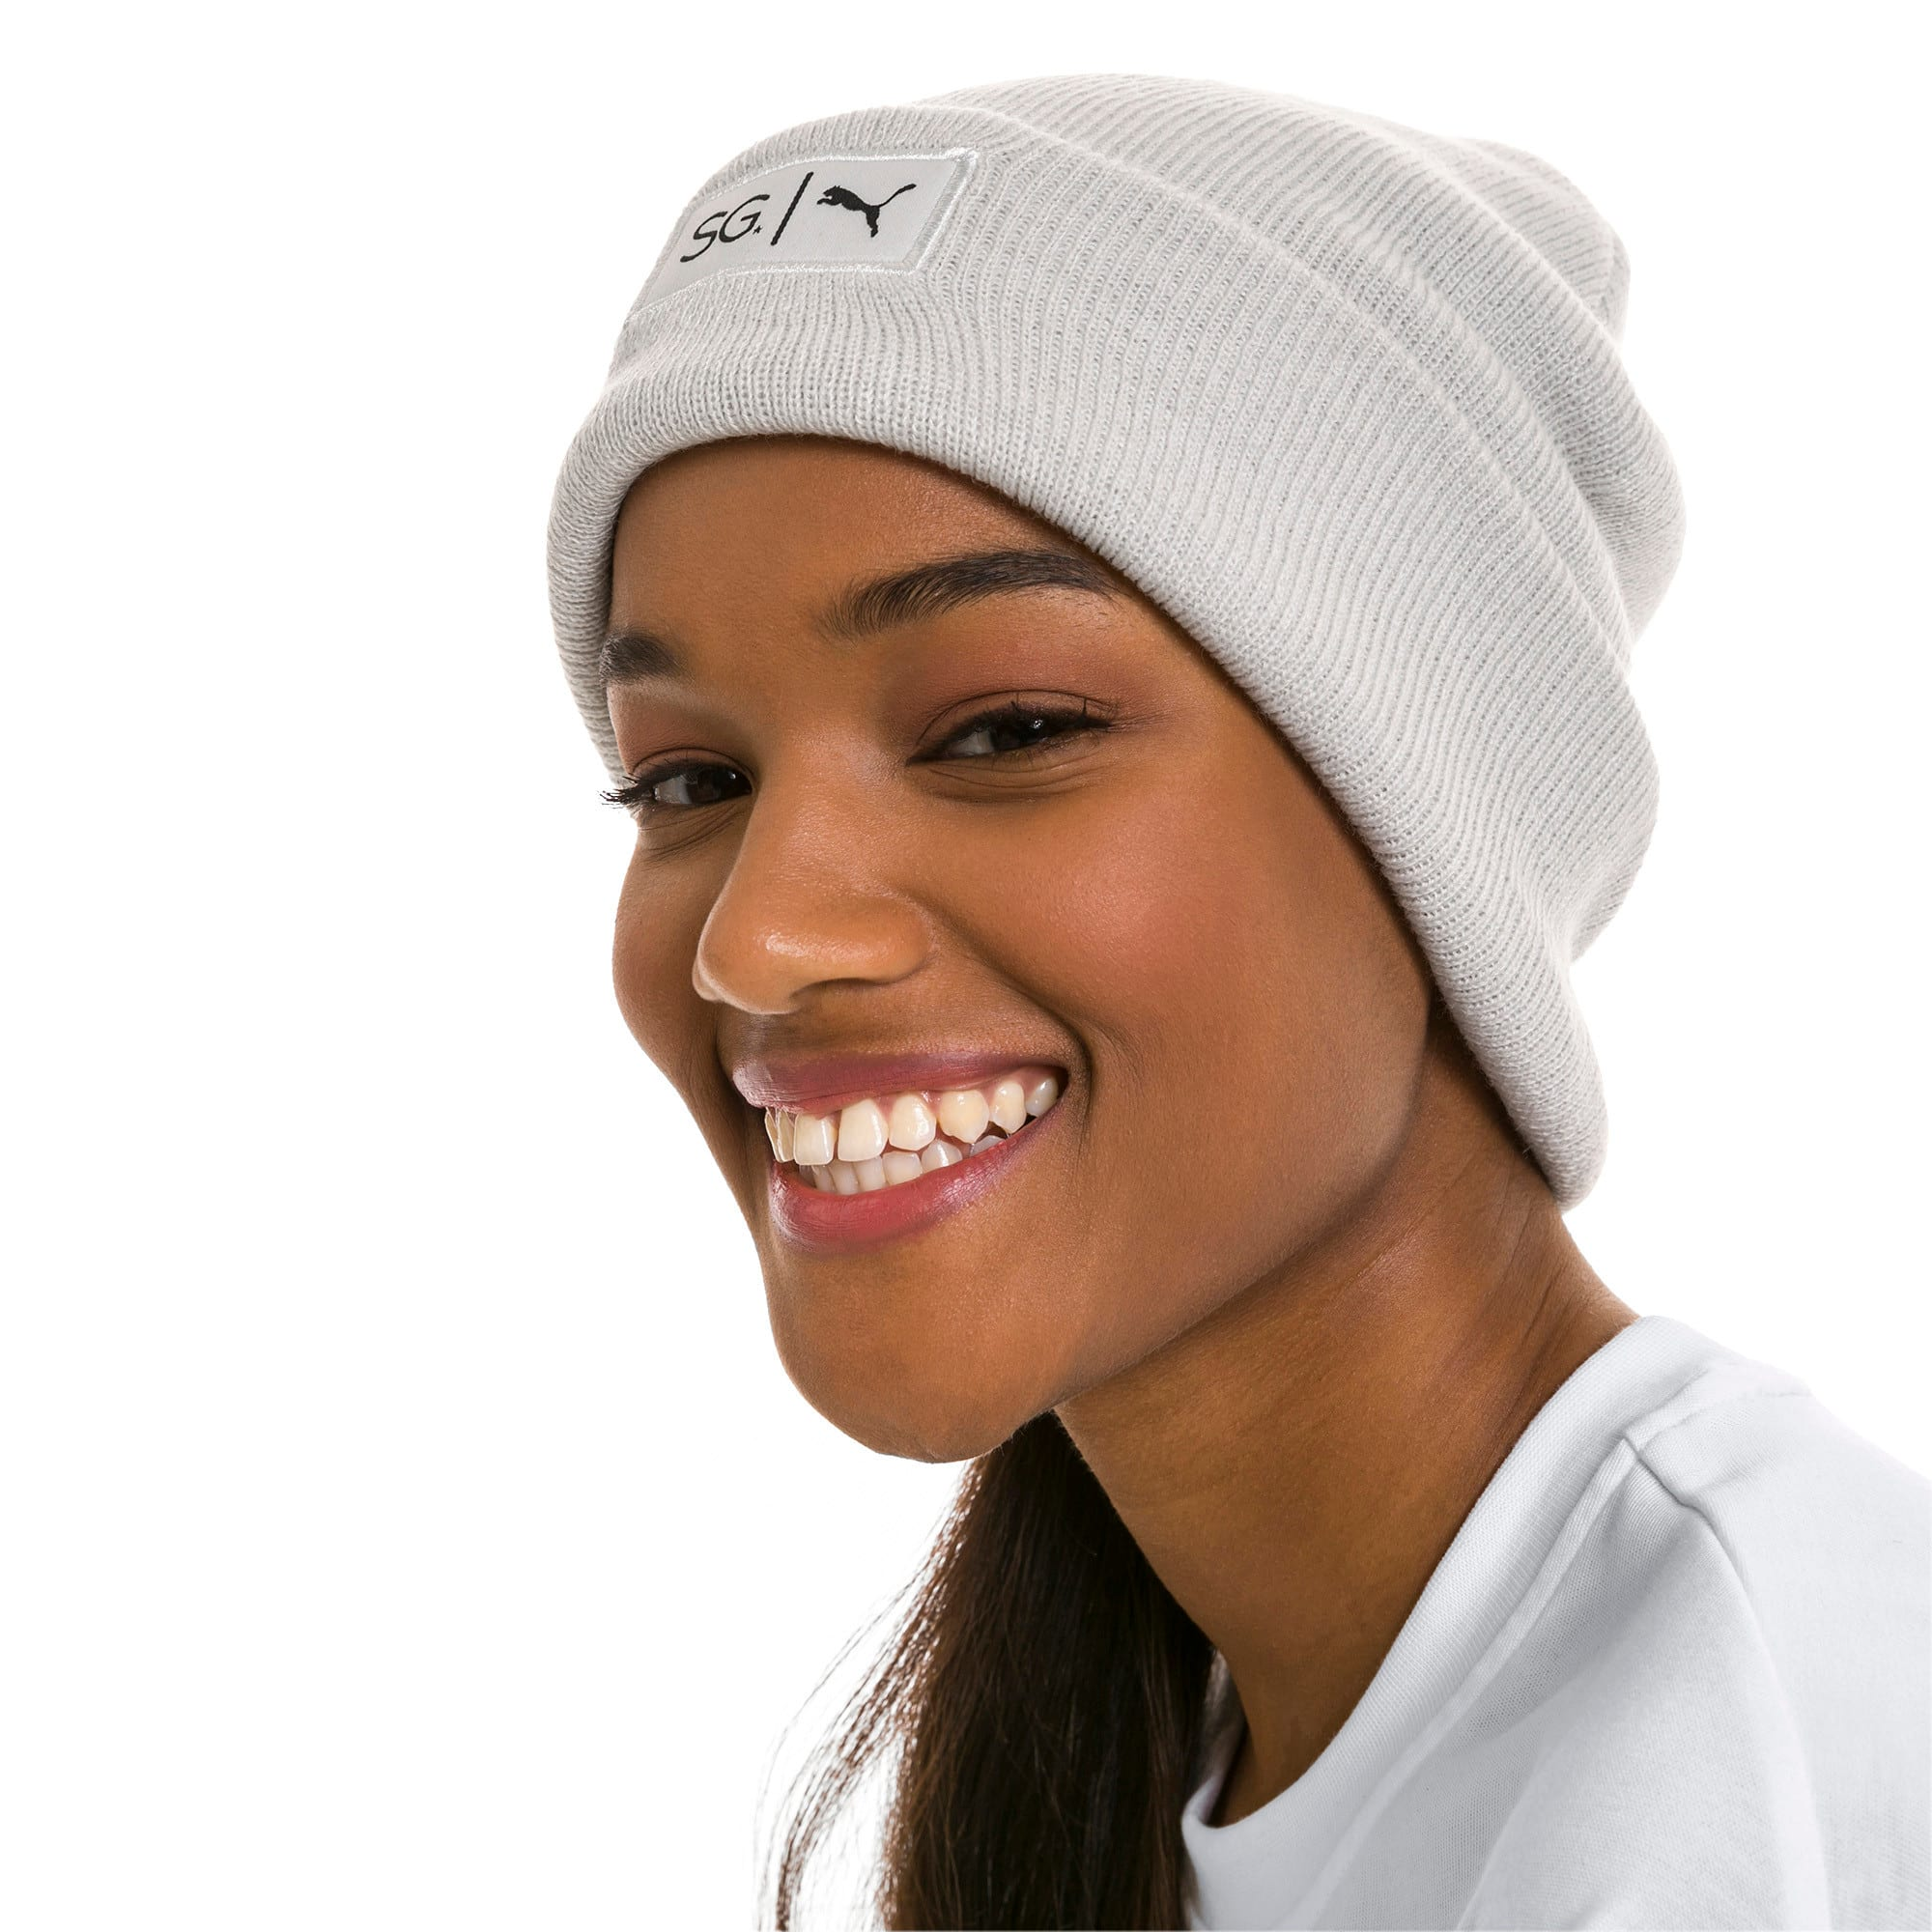 Thumbnail 3 of PUMA x SELENA GOMEZ Women's Beanie, Glacier Gray, medium-IND